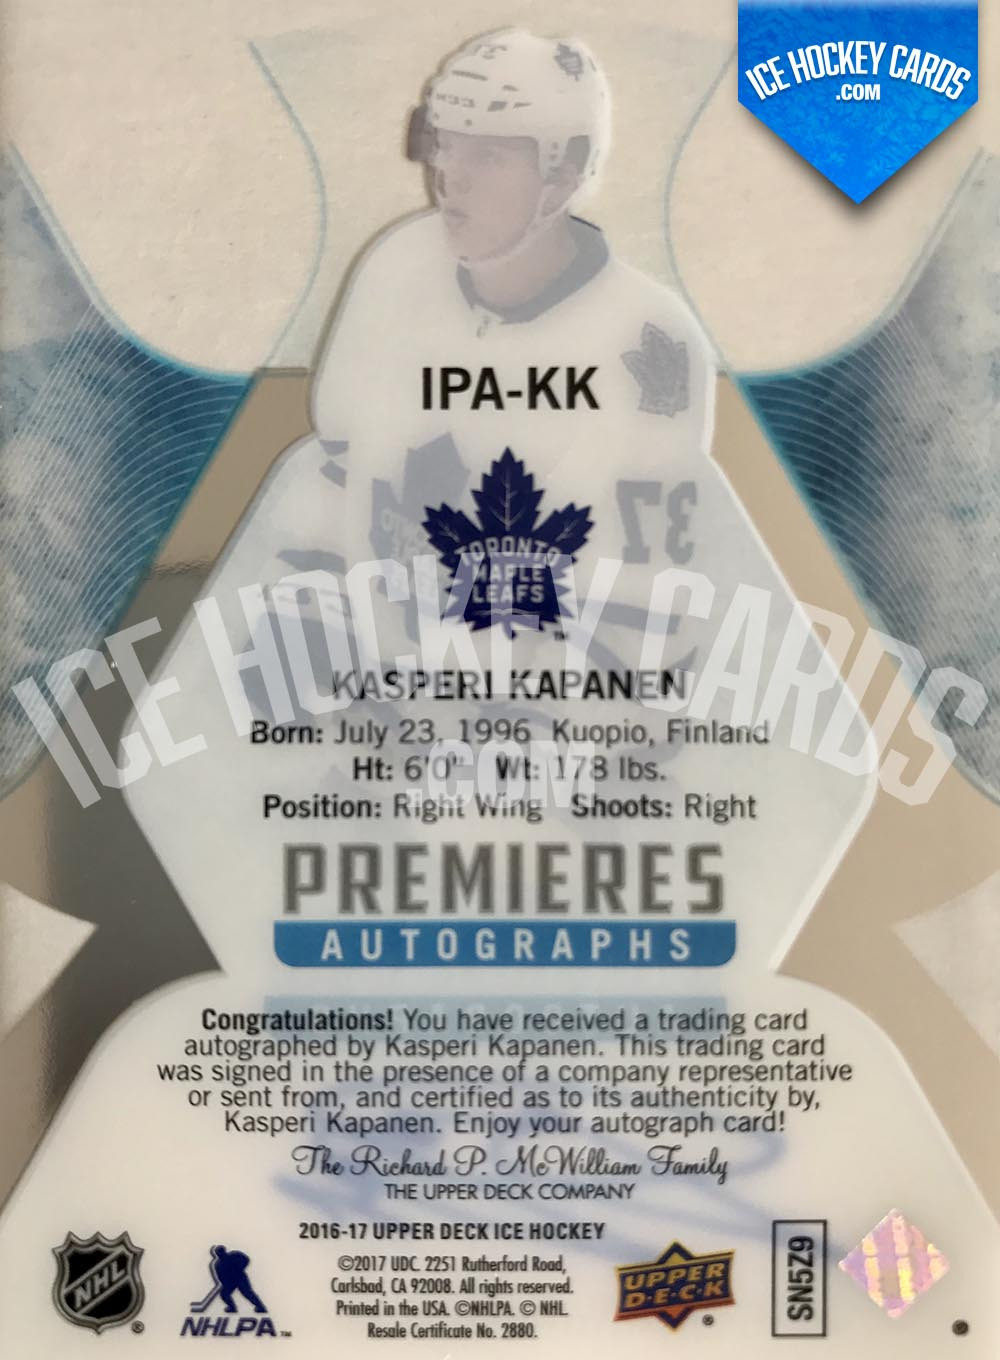 Upper Deck - ICE 2016-17 - Kasperi Kapanen Ice Premieres Autographs Rookie Auto back